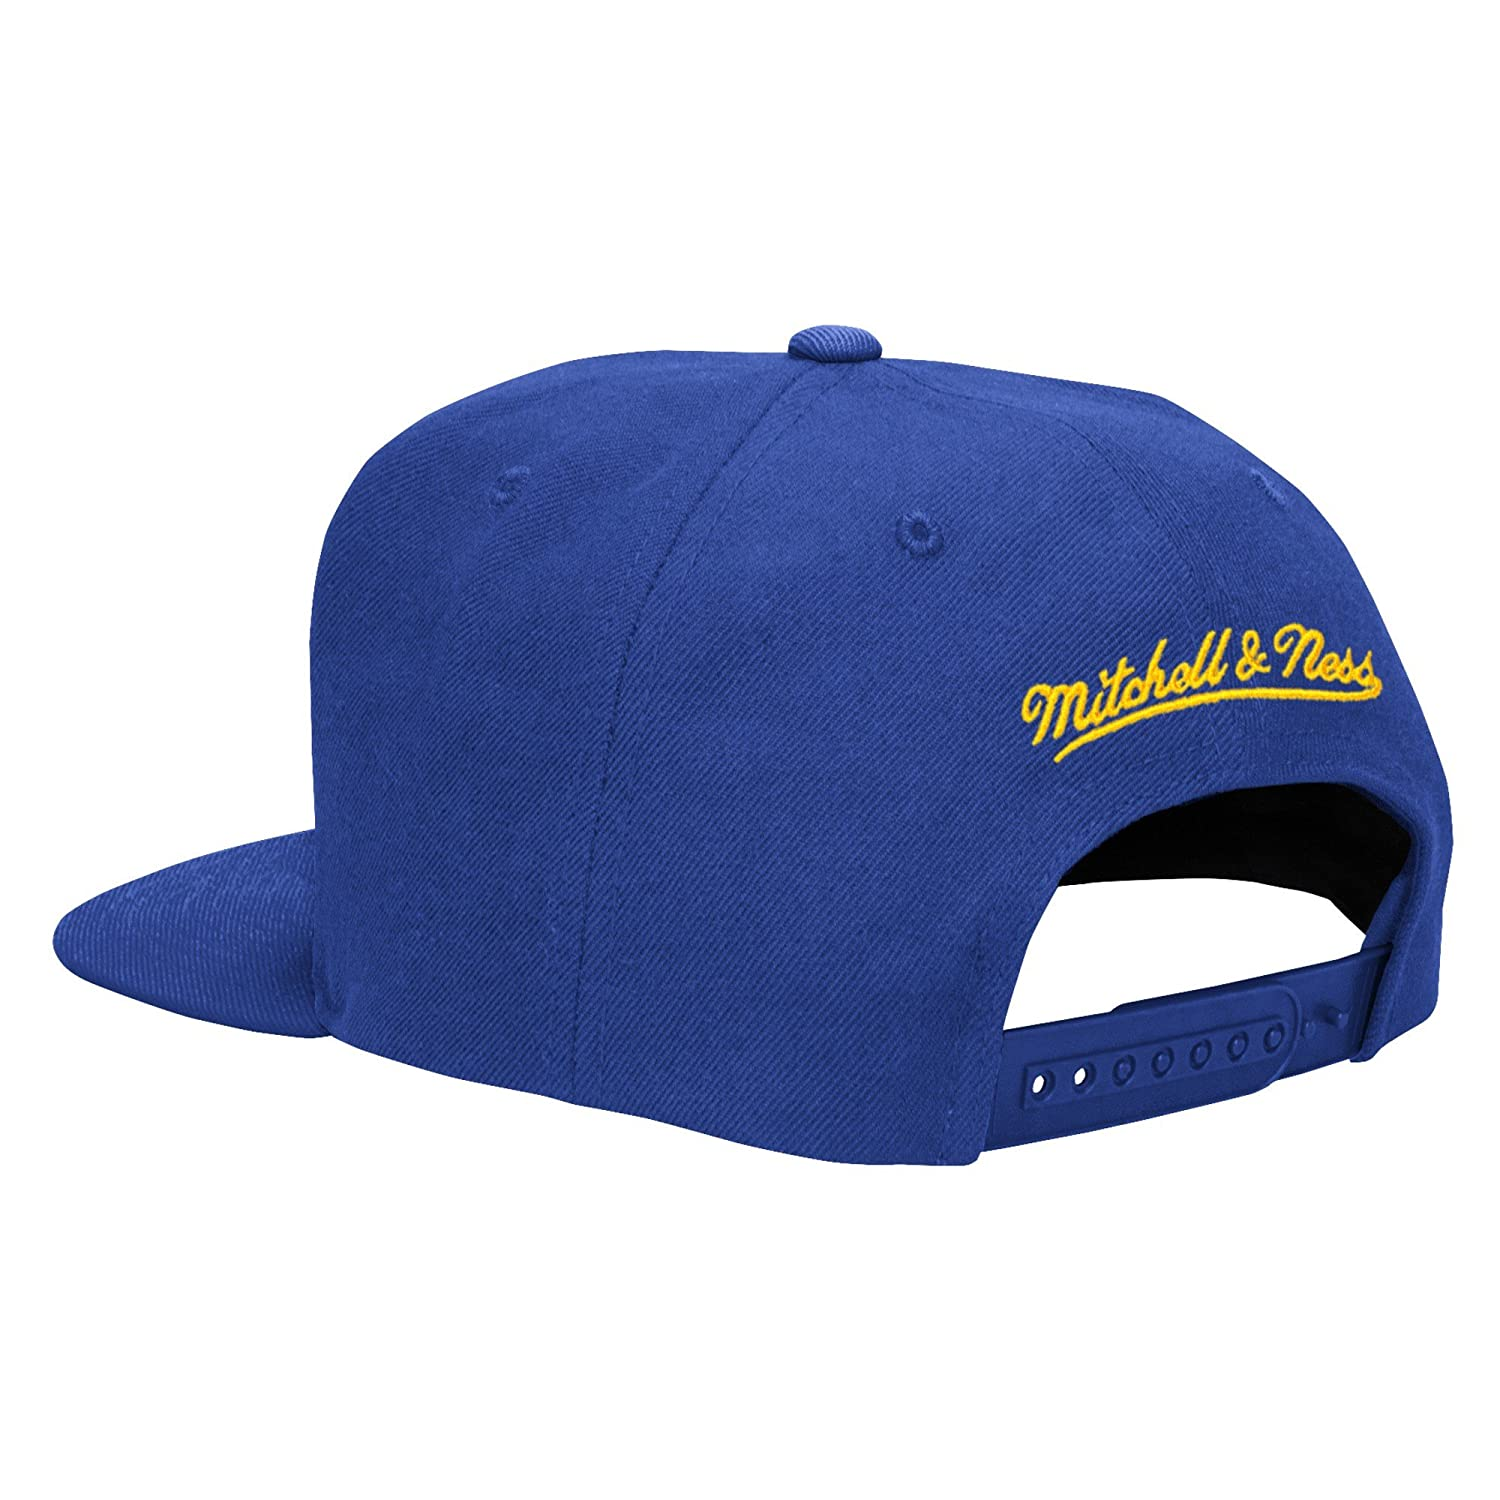 760c09bb760710 Amazon.com : Golden State Warriors NBA Mitchell & Ness Solid Adjustable Snapback  Hat - Blue : Sports & Outdoors